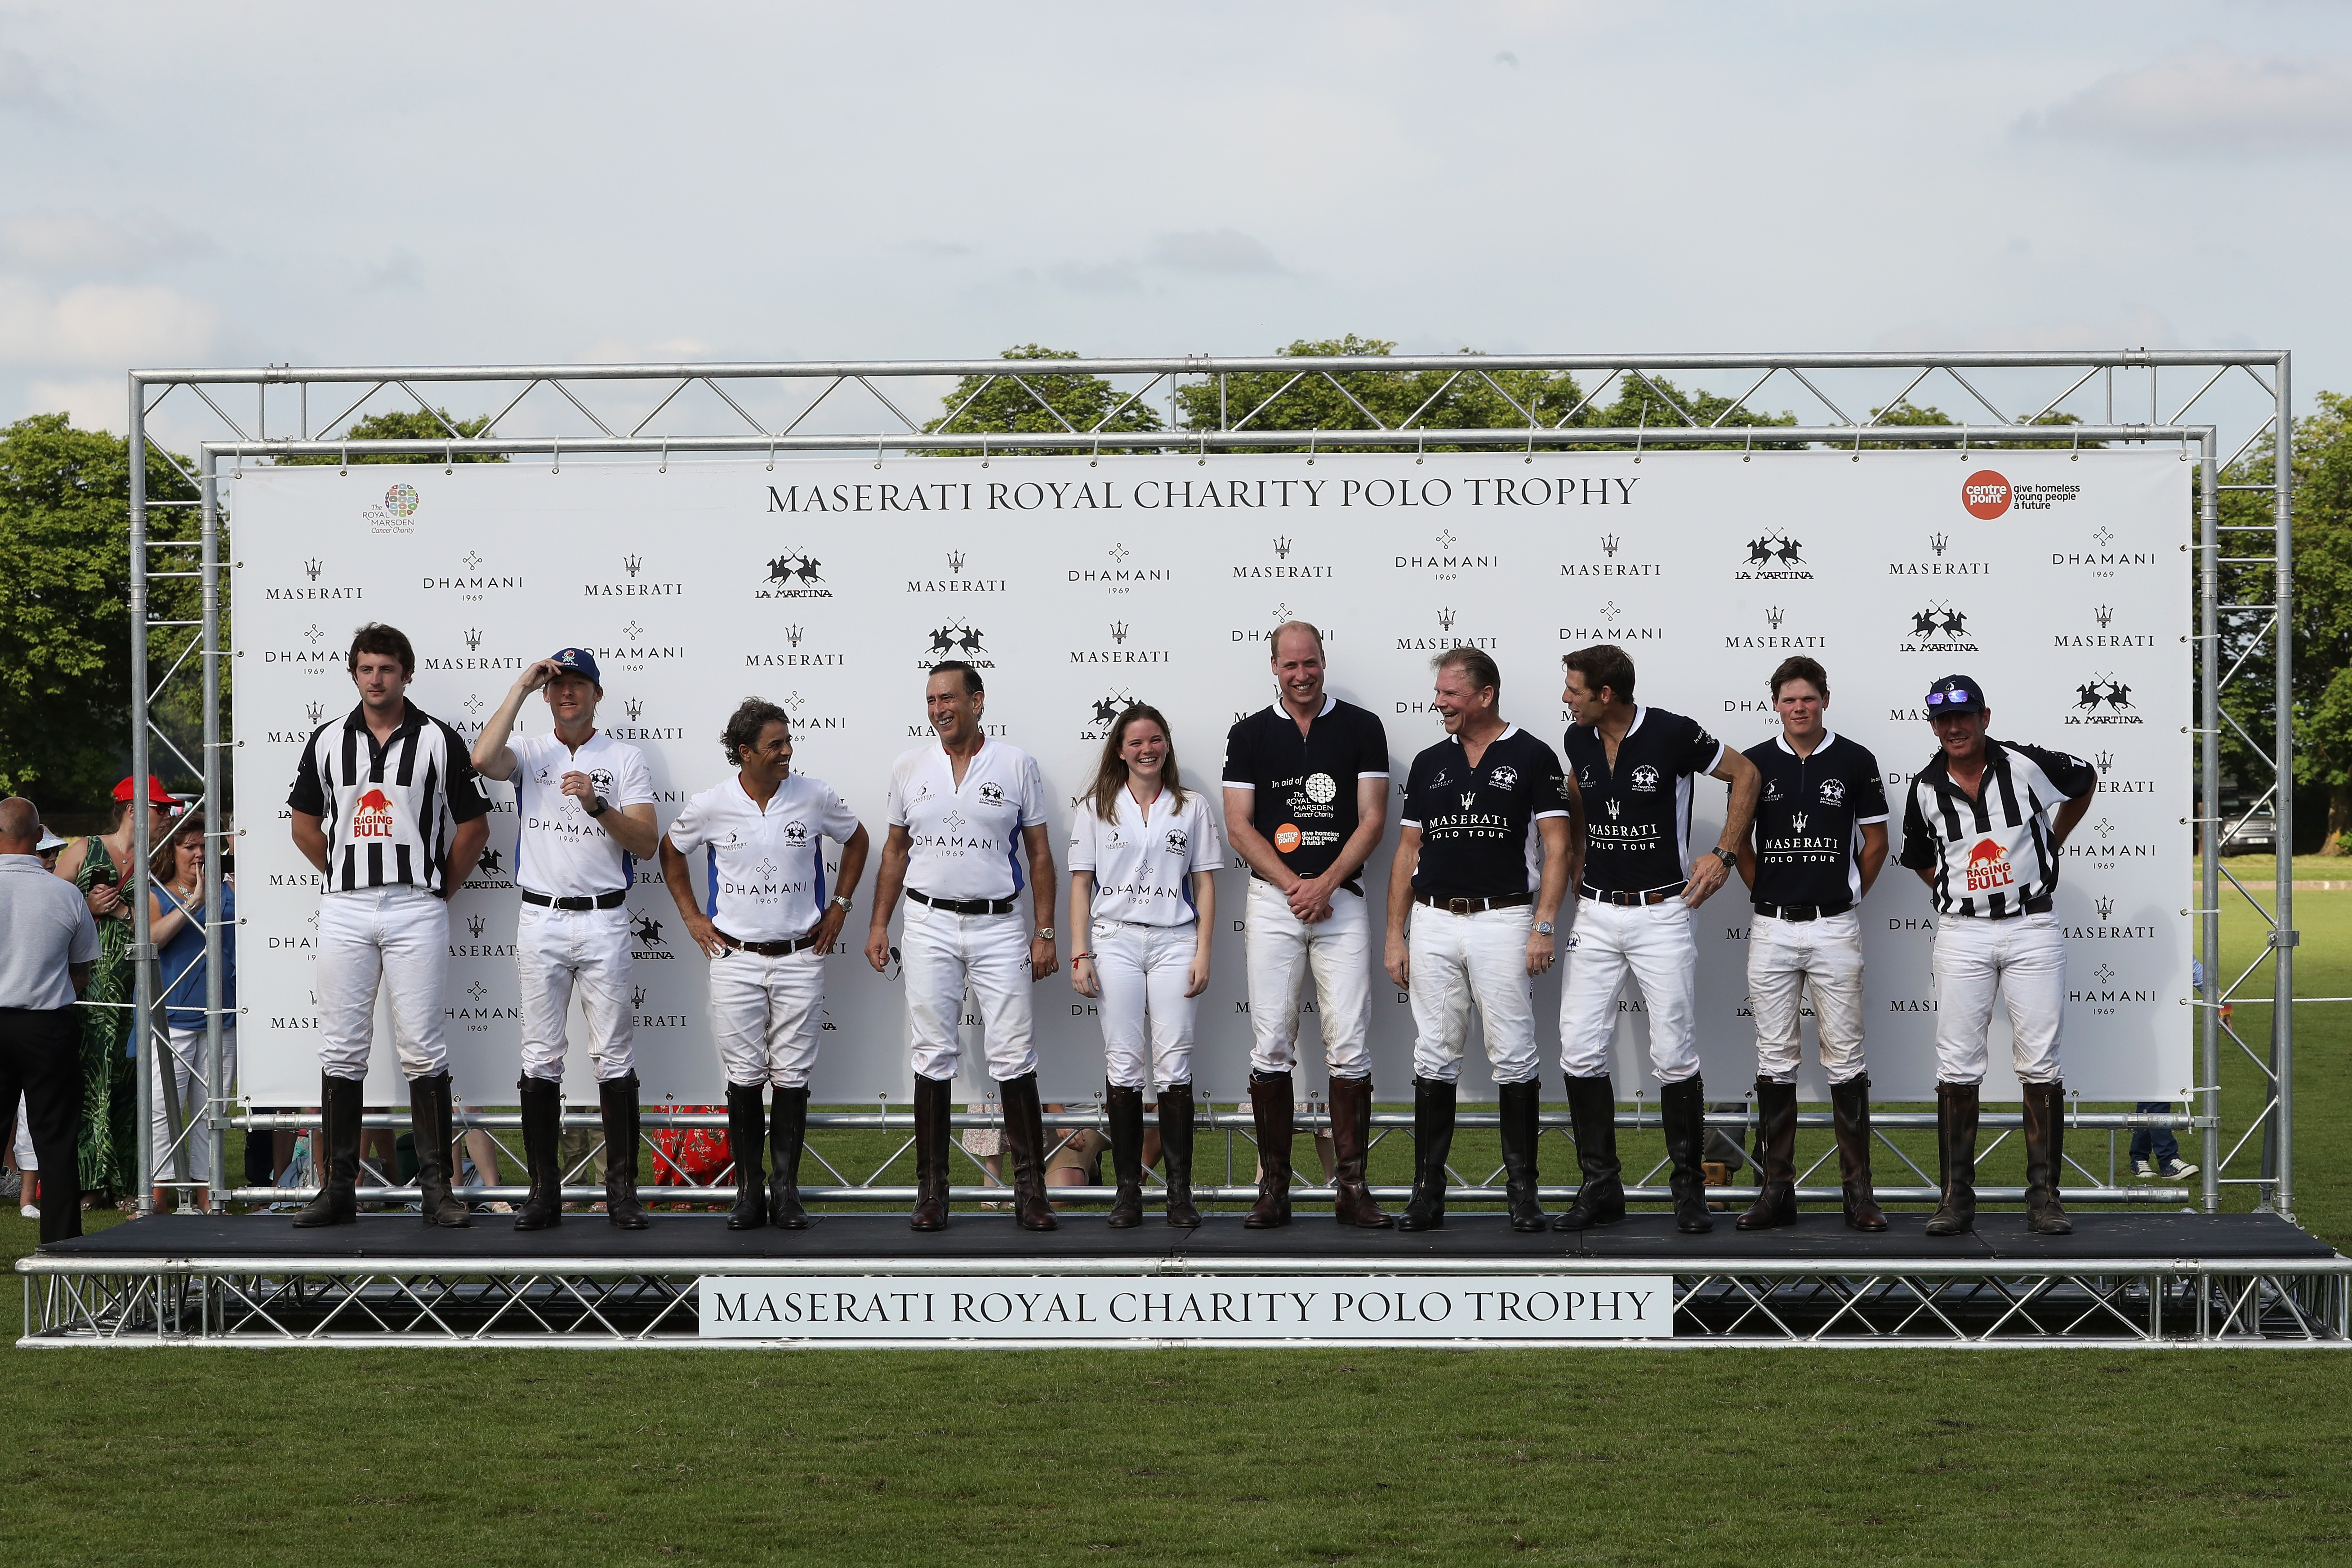 TETBURY, ENGLAND - JUNE 10: Maserati Royal Charity Polo Trophy 2018 – Team photo including Prince William, Duke of Cambridge (5thR) and Malcolm Borwick (3rdR) following the Maserati Royal Charity Polo Trophy 2018 at Beaufort Polo Club on June 10, 2018 in Tetbury, England. (Photo by Chris Jackson/Getty Images for Maserati / La Martina) *** Local Caption *** Prince William; Duke of Cambridge; Malcolm Borwick